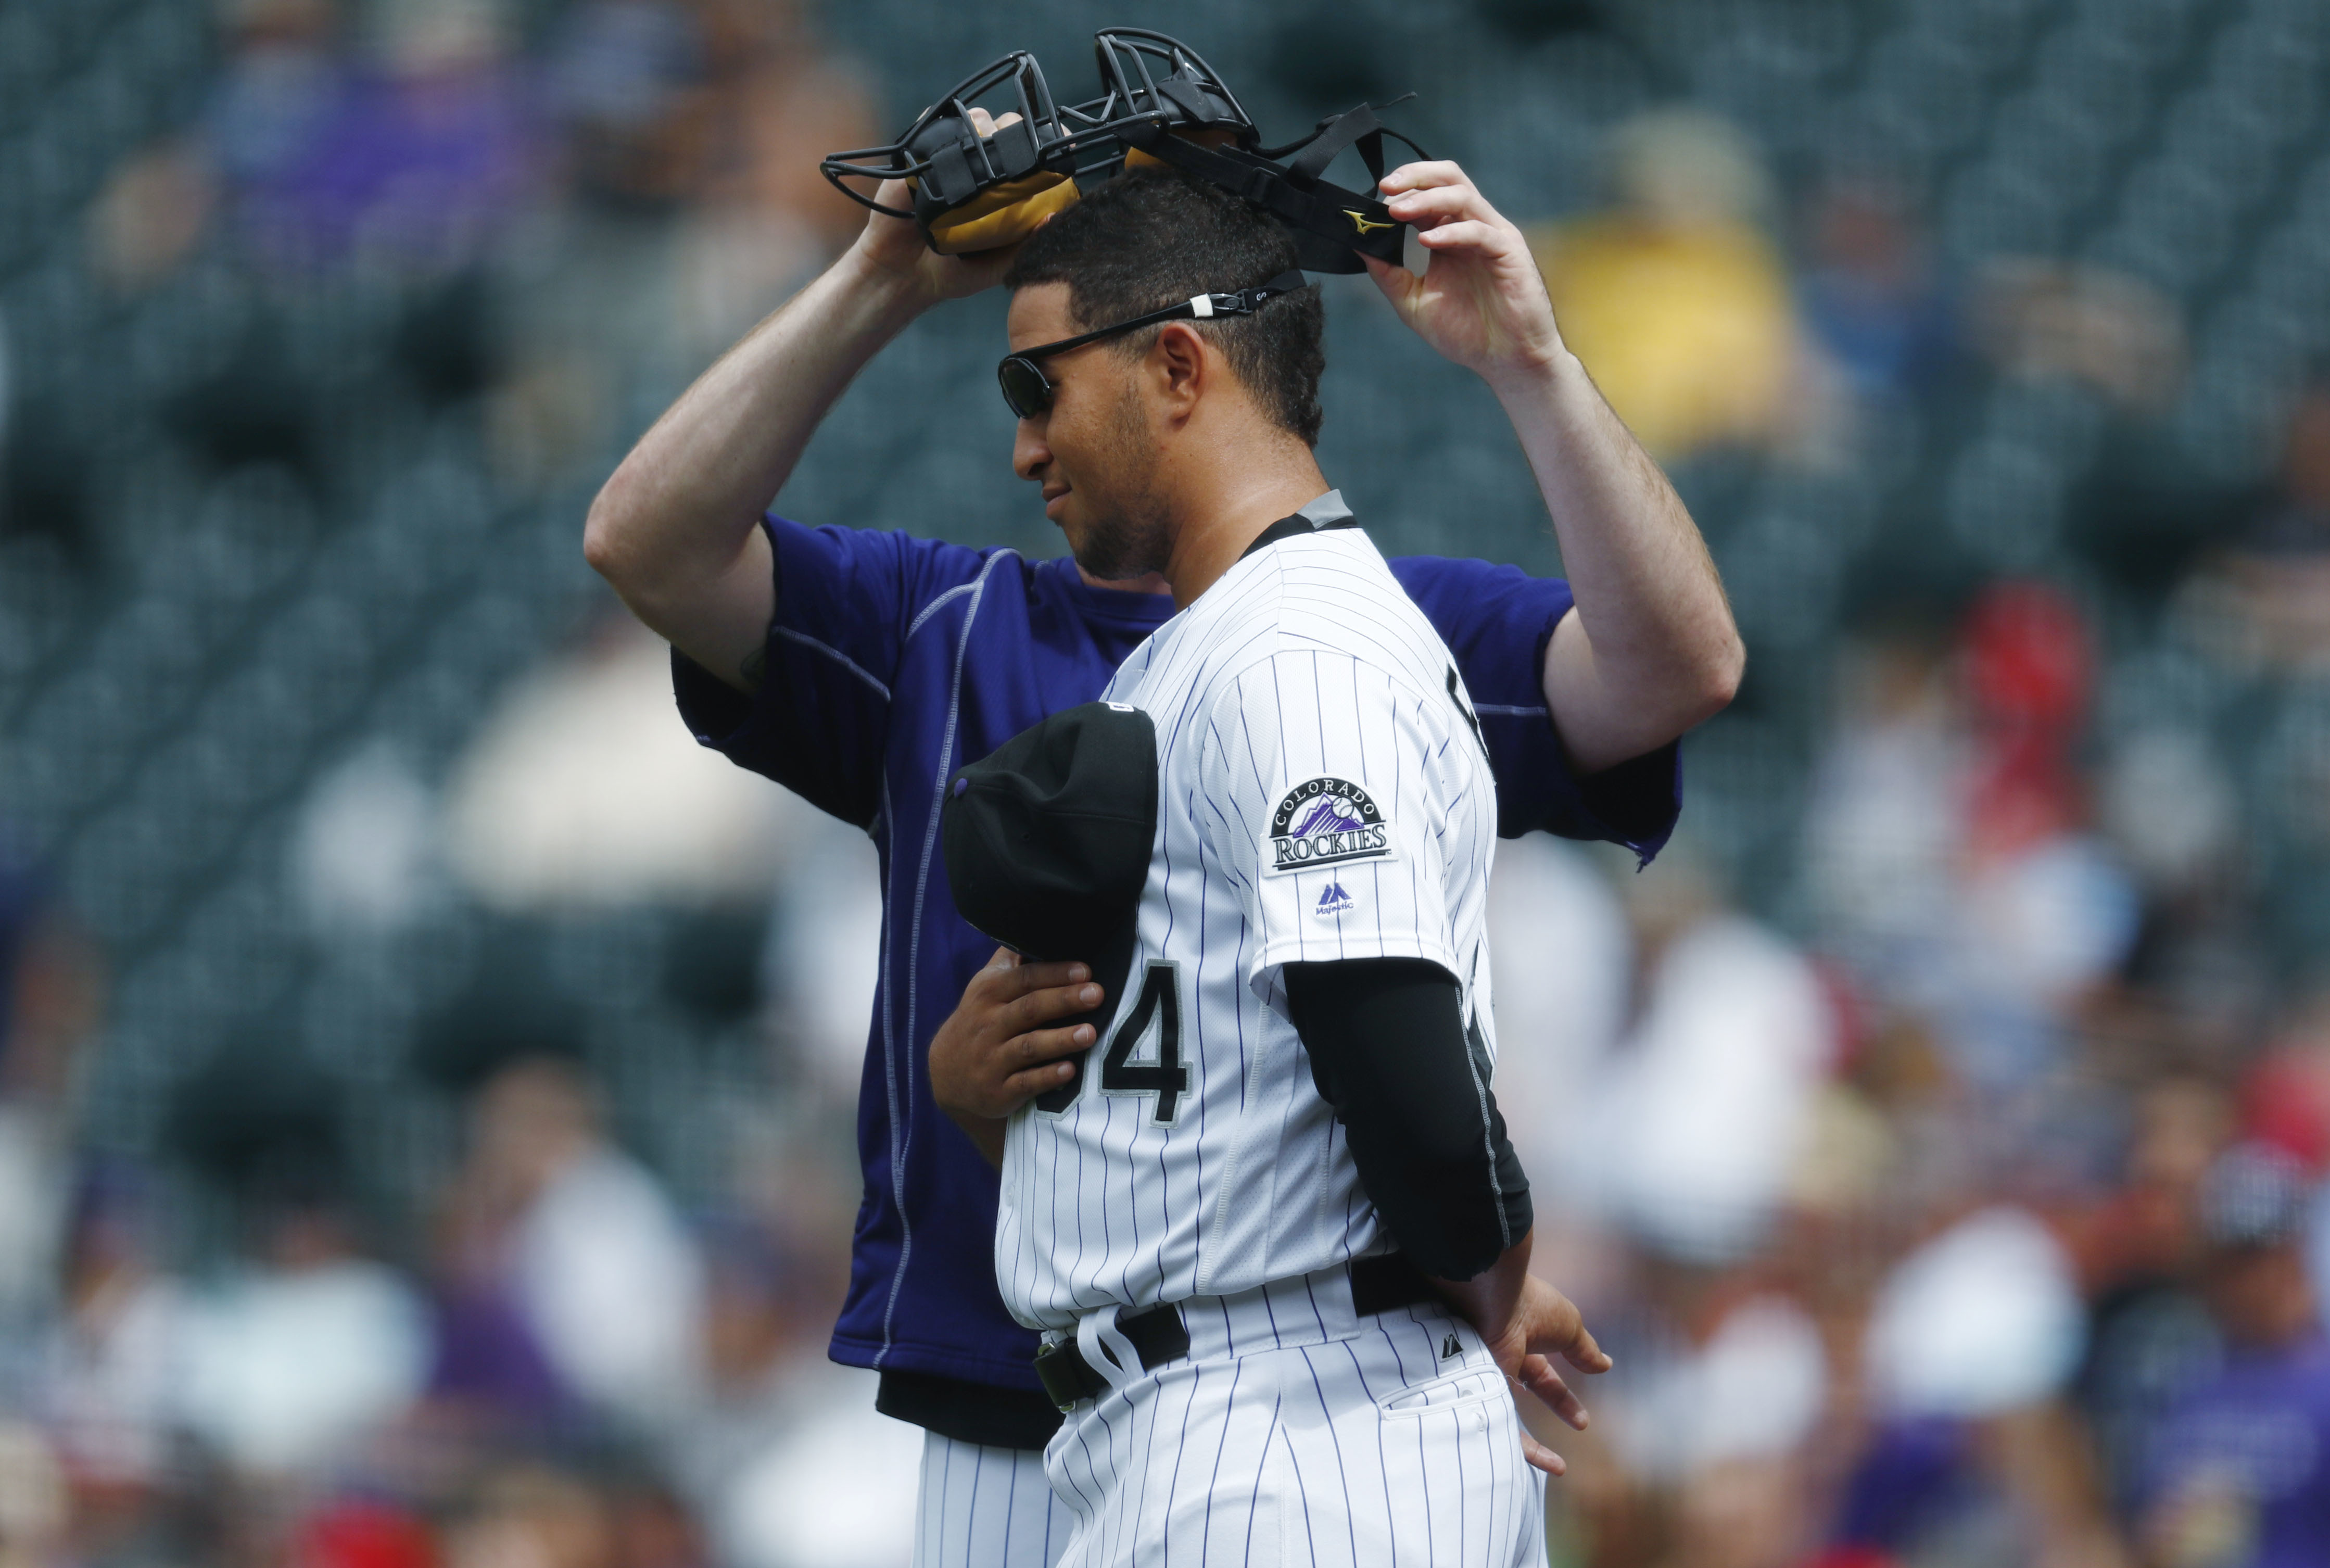 Colorado Rockies relief pitcher Carlos Estevez is fitted for a catcher's mask by relief pitcher Boone Logan as Estevez takes part in a stand off against St. Louis Cardinals right fielder Jose Martinez after the teams dispersed from the warning track follo